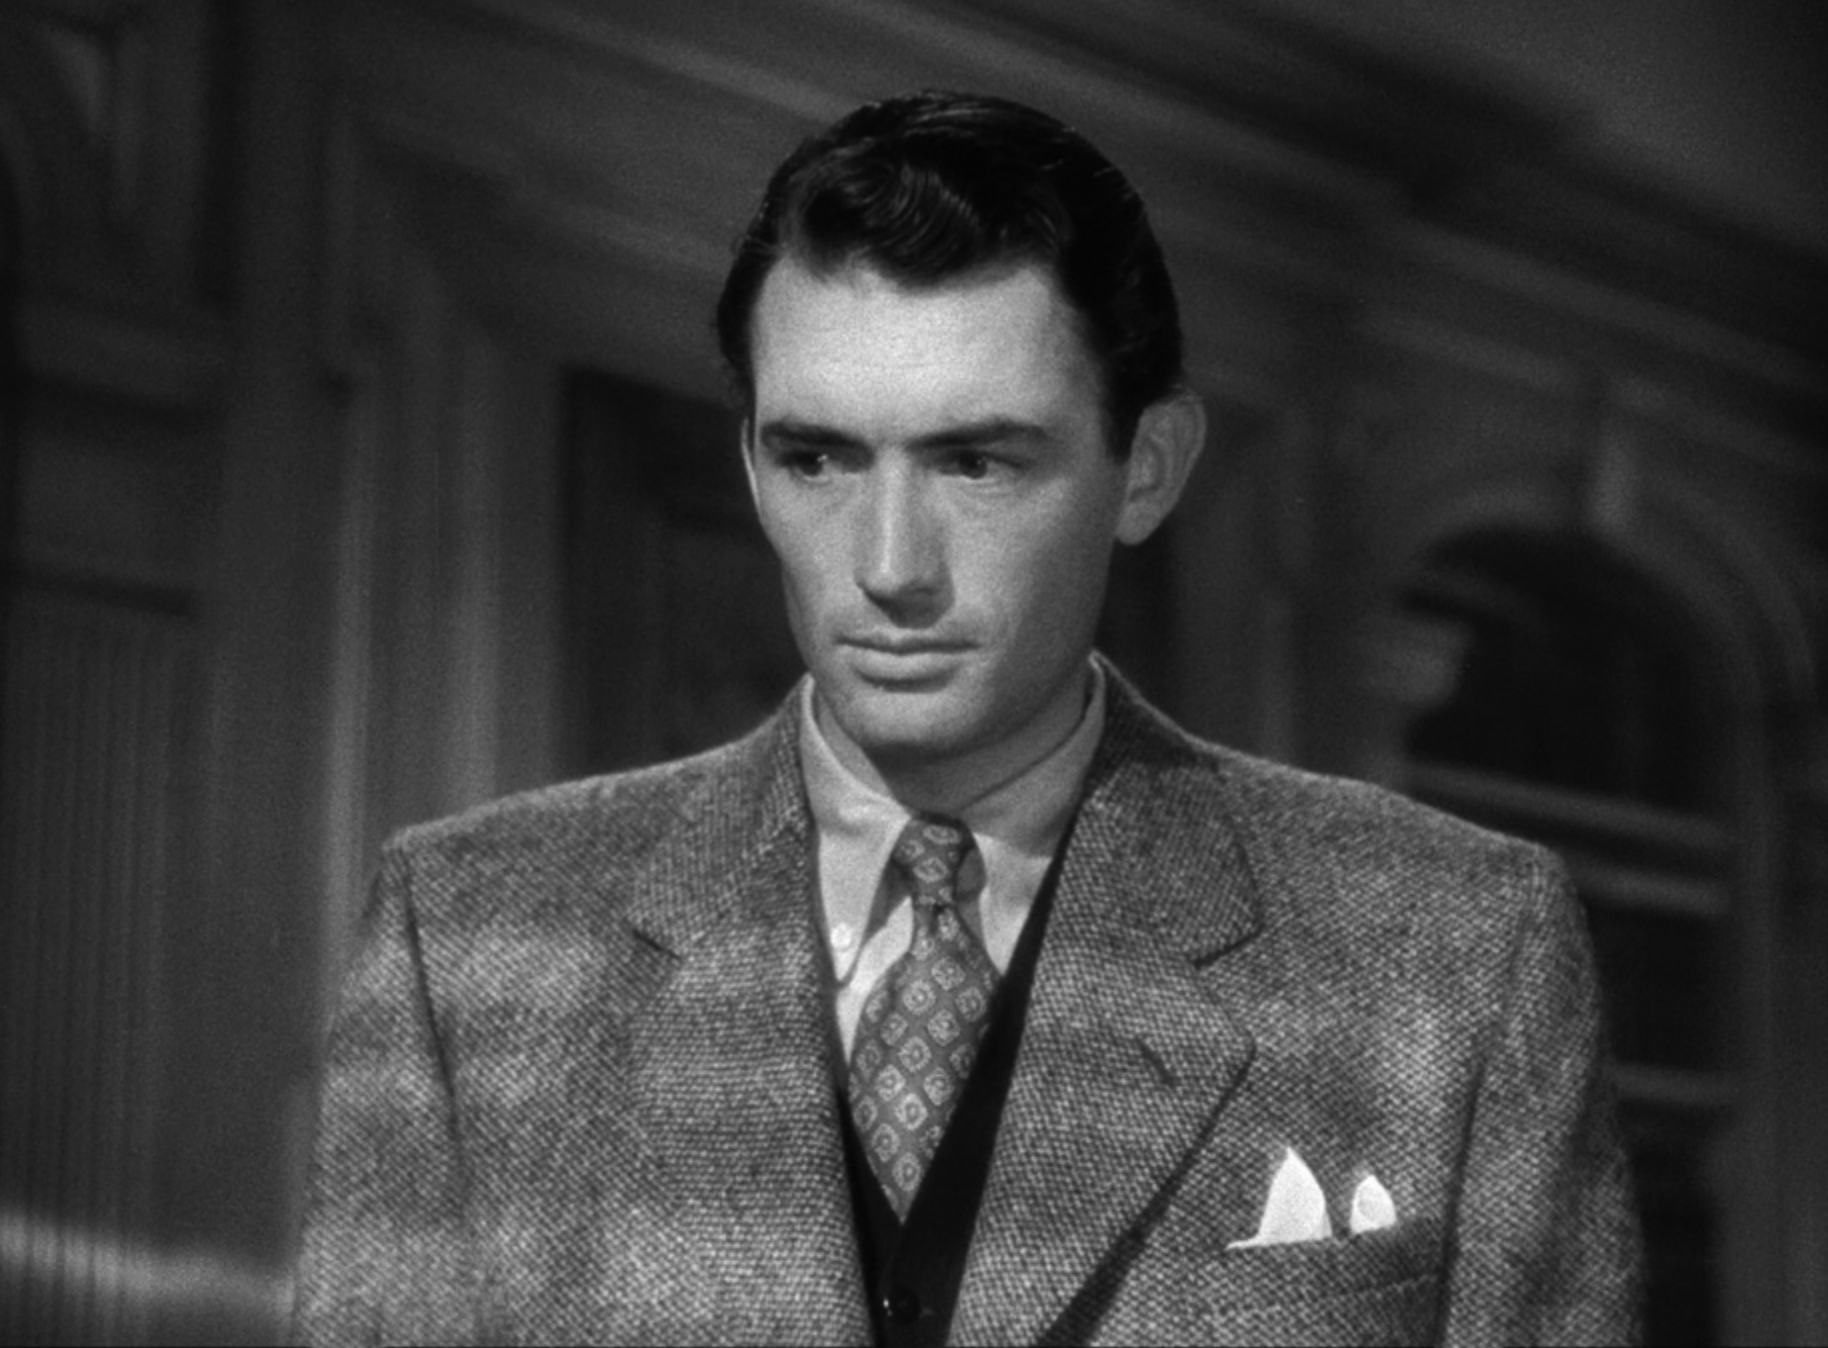 Gregory Peck in Spellbound, a movie whose plot involves amnesia